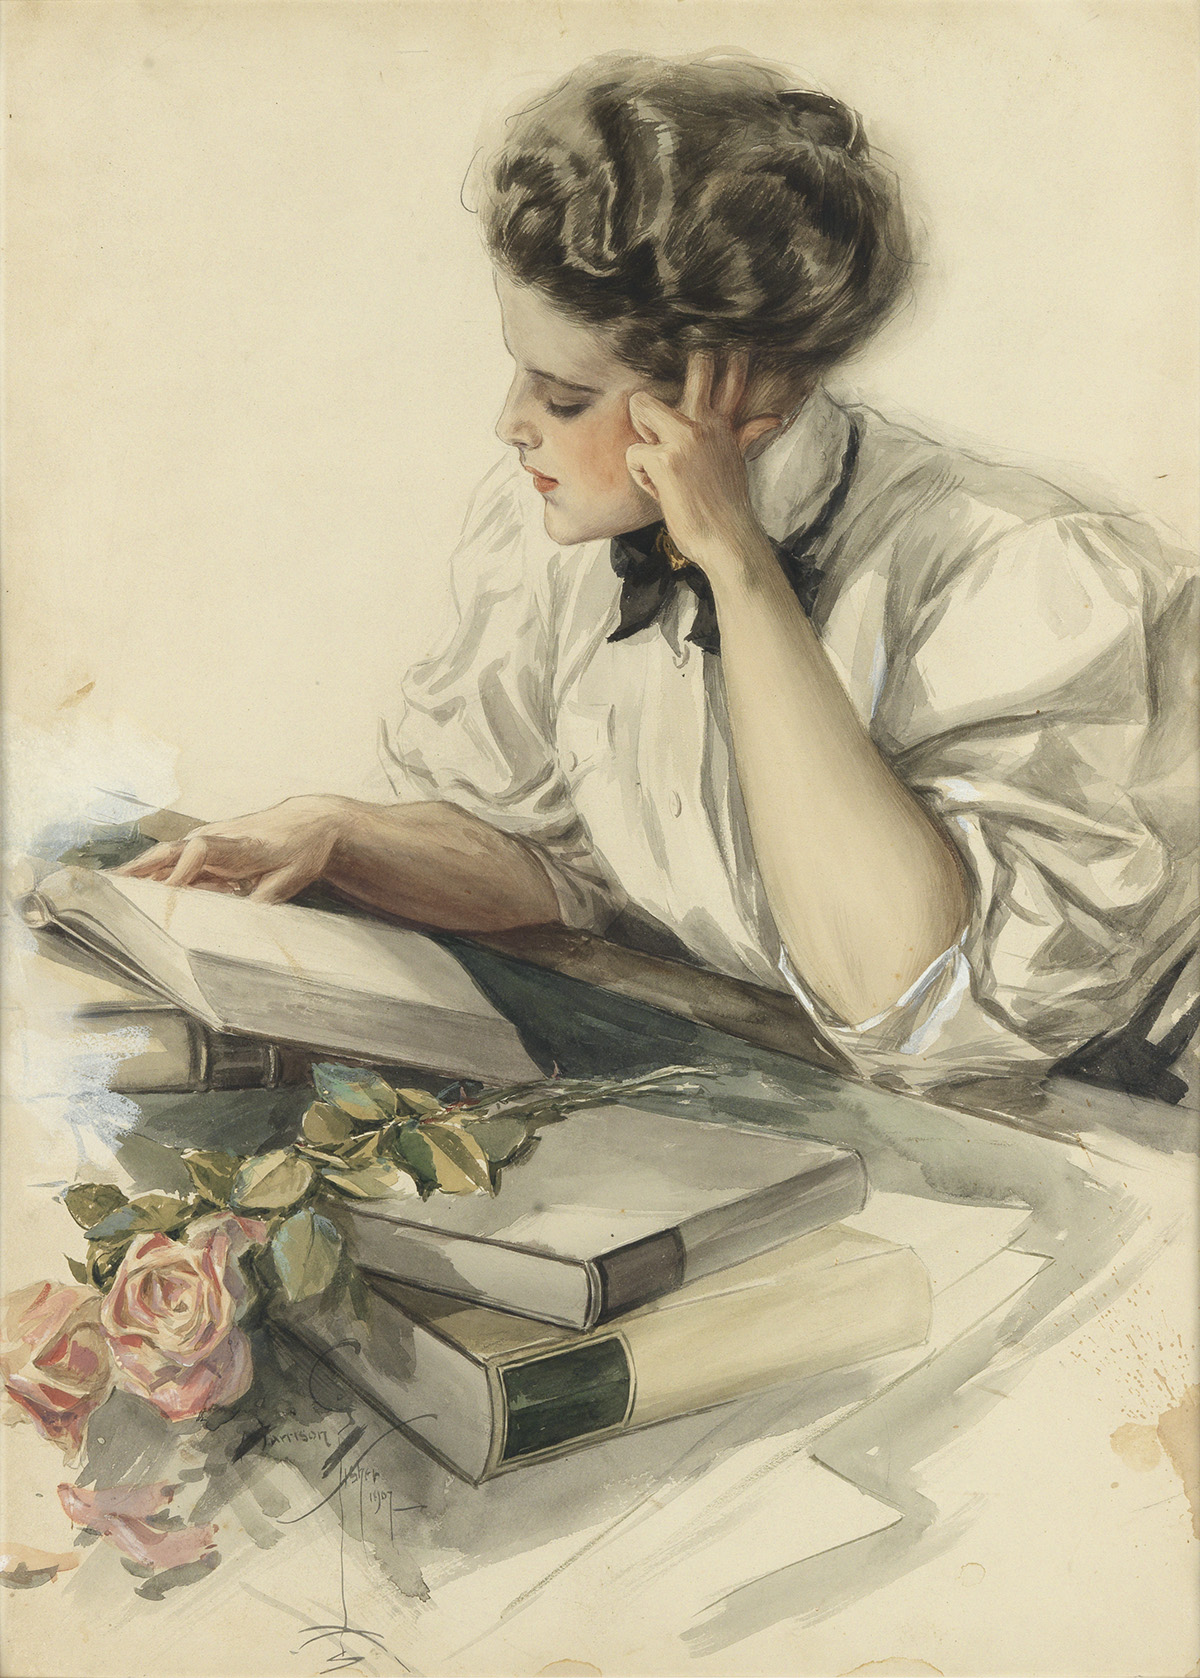 HARRISON FISHER. The Study Hour (The College Girl at Her Studies).